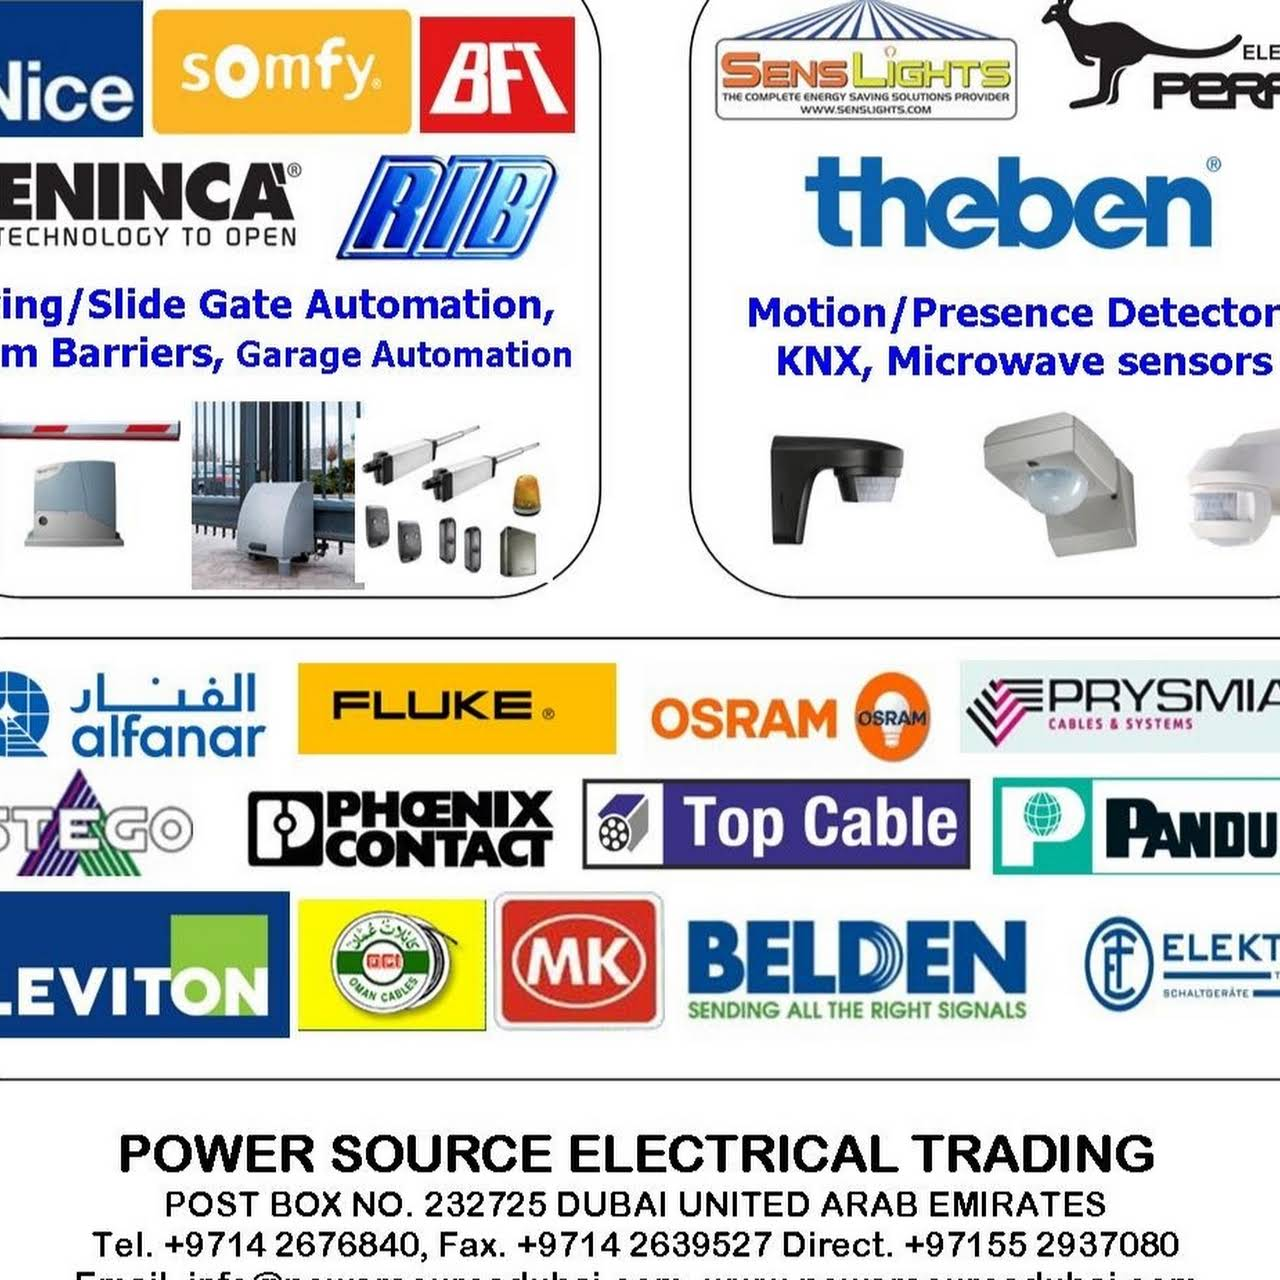 Power Source Electrical Trading Supply Store Mk Wiring Devices Qatar Home Automation